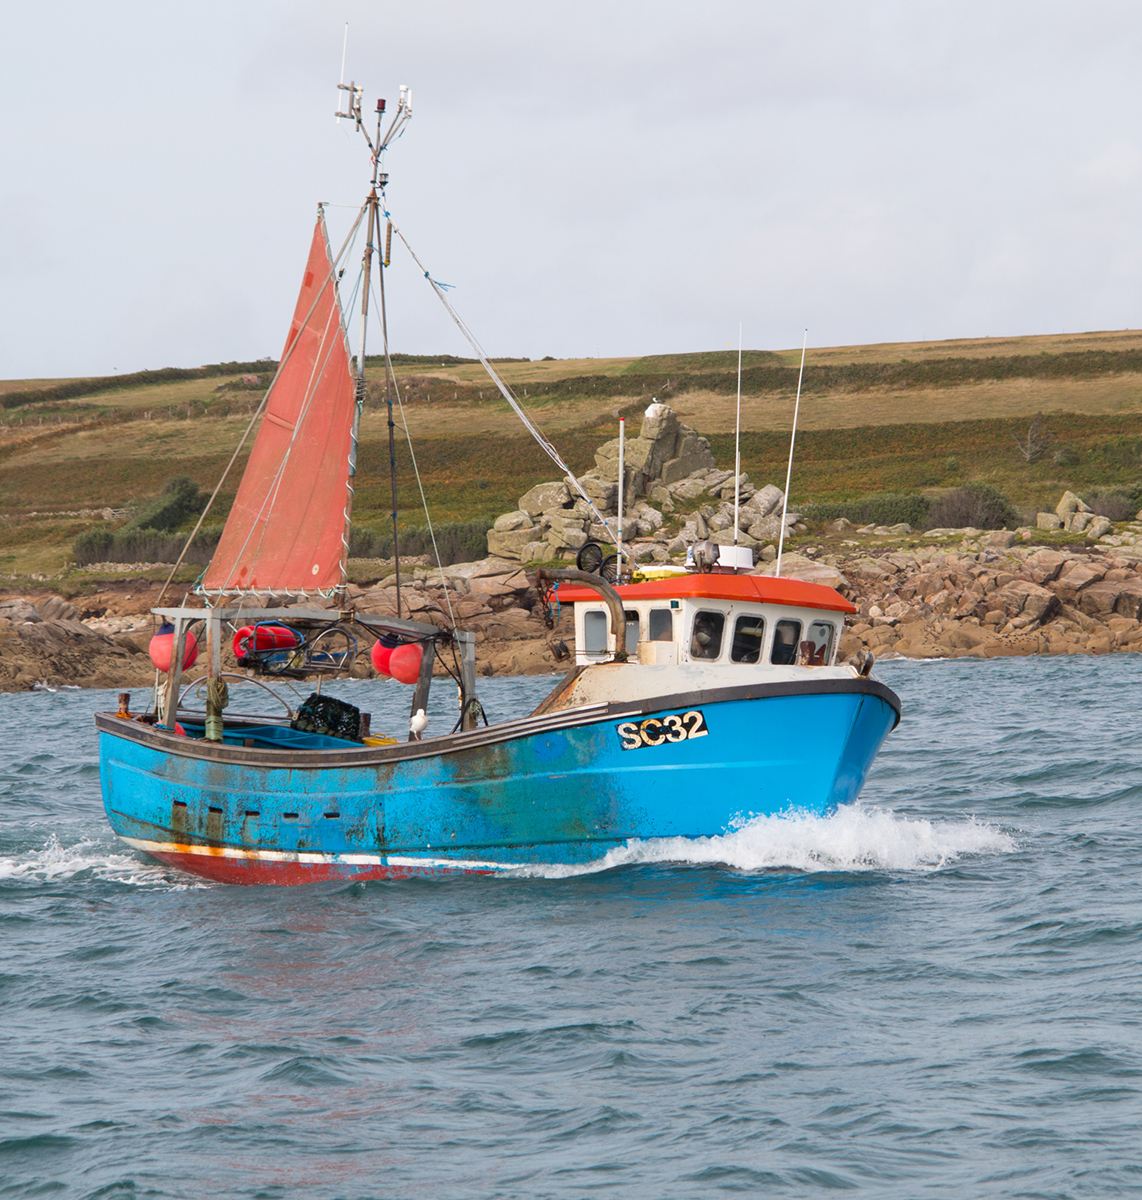 065 Isles of Scilly_Sept2014IoS&WC-2